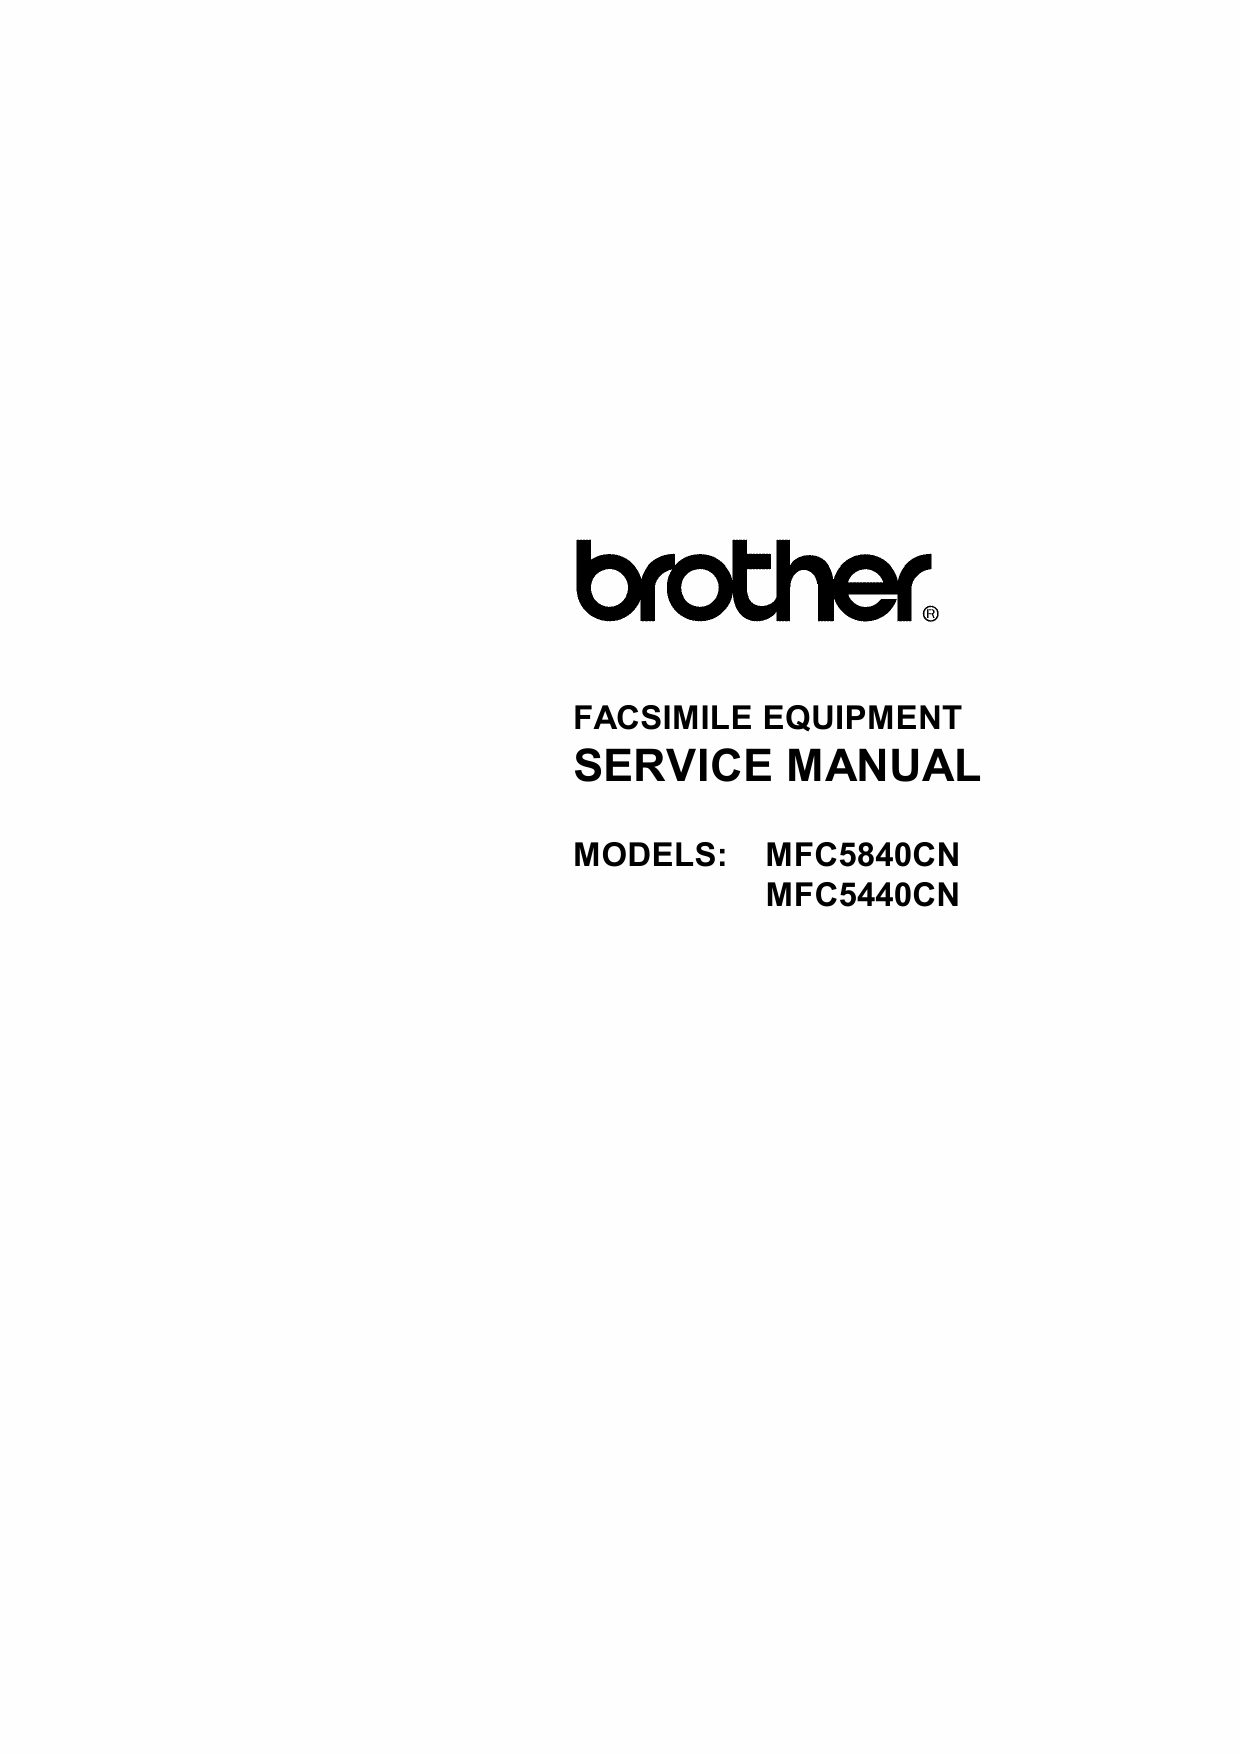 Brother MFC 5440CN 5840CN Service Manual and Parts-1